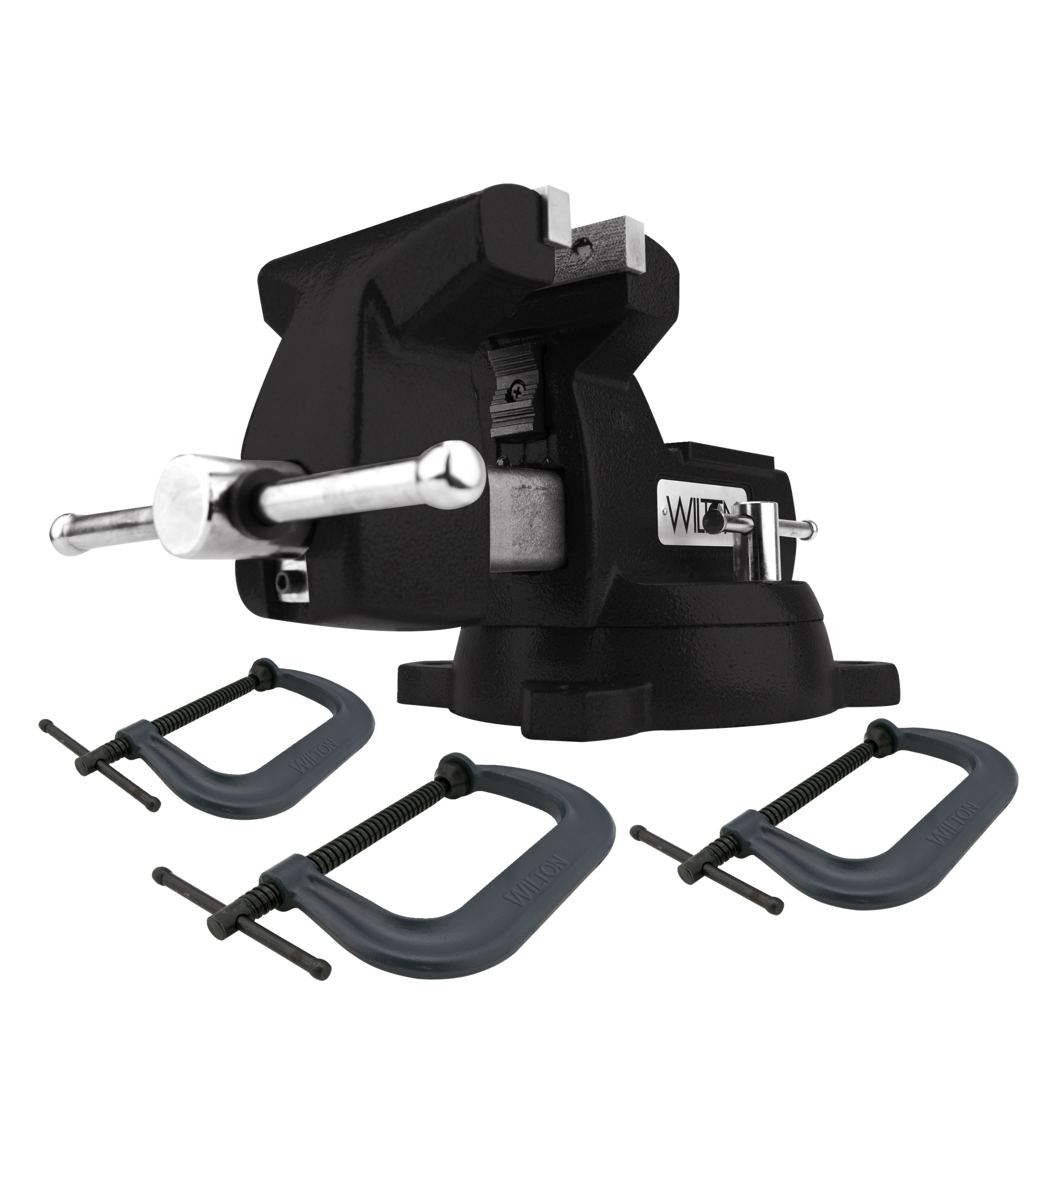 Manual: Holding Strong Kit, Black 746 Mechanics Vise and 3-pc 400 Series C-Clamp Set